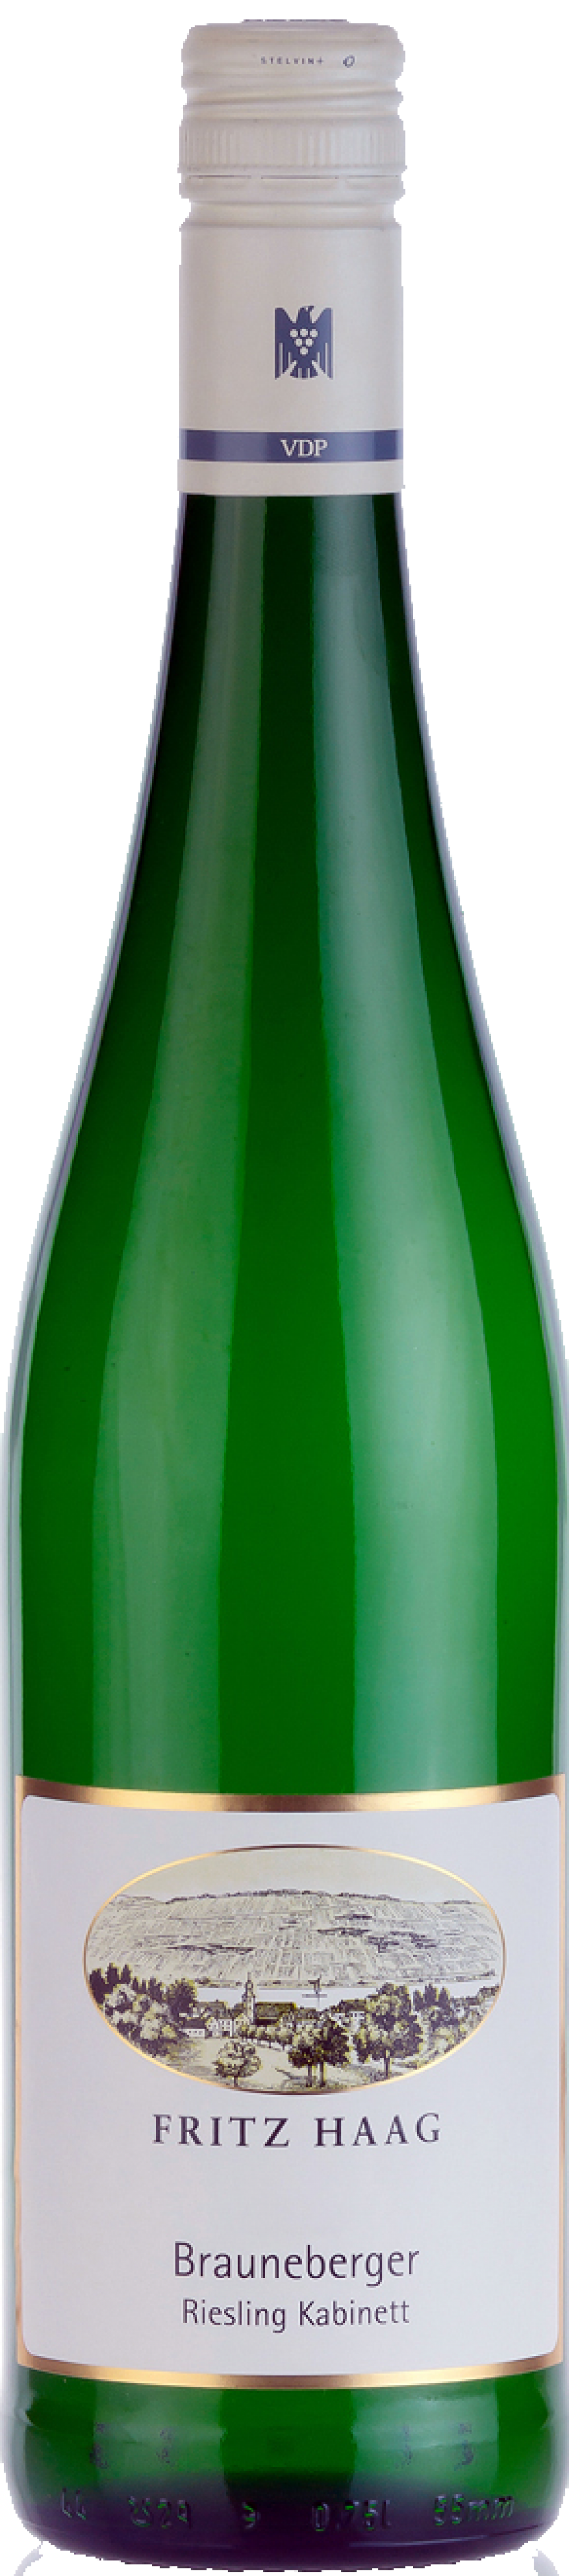 files/images/wines/Germany/fritz-haag-mosel/2015  Brauneberger Riesling Kabinett.png